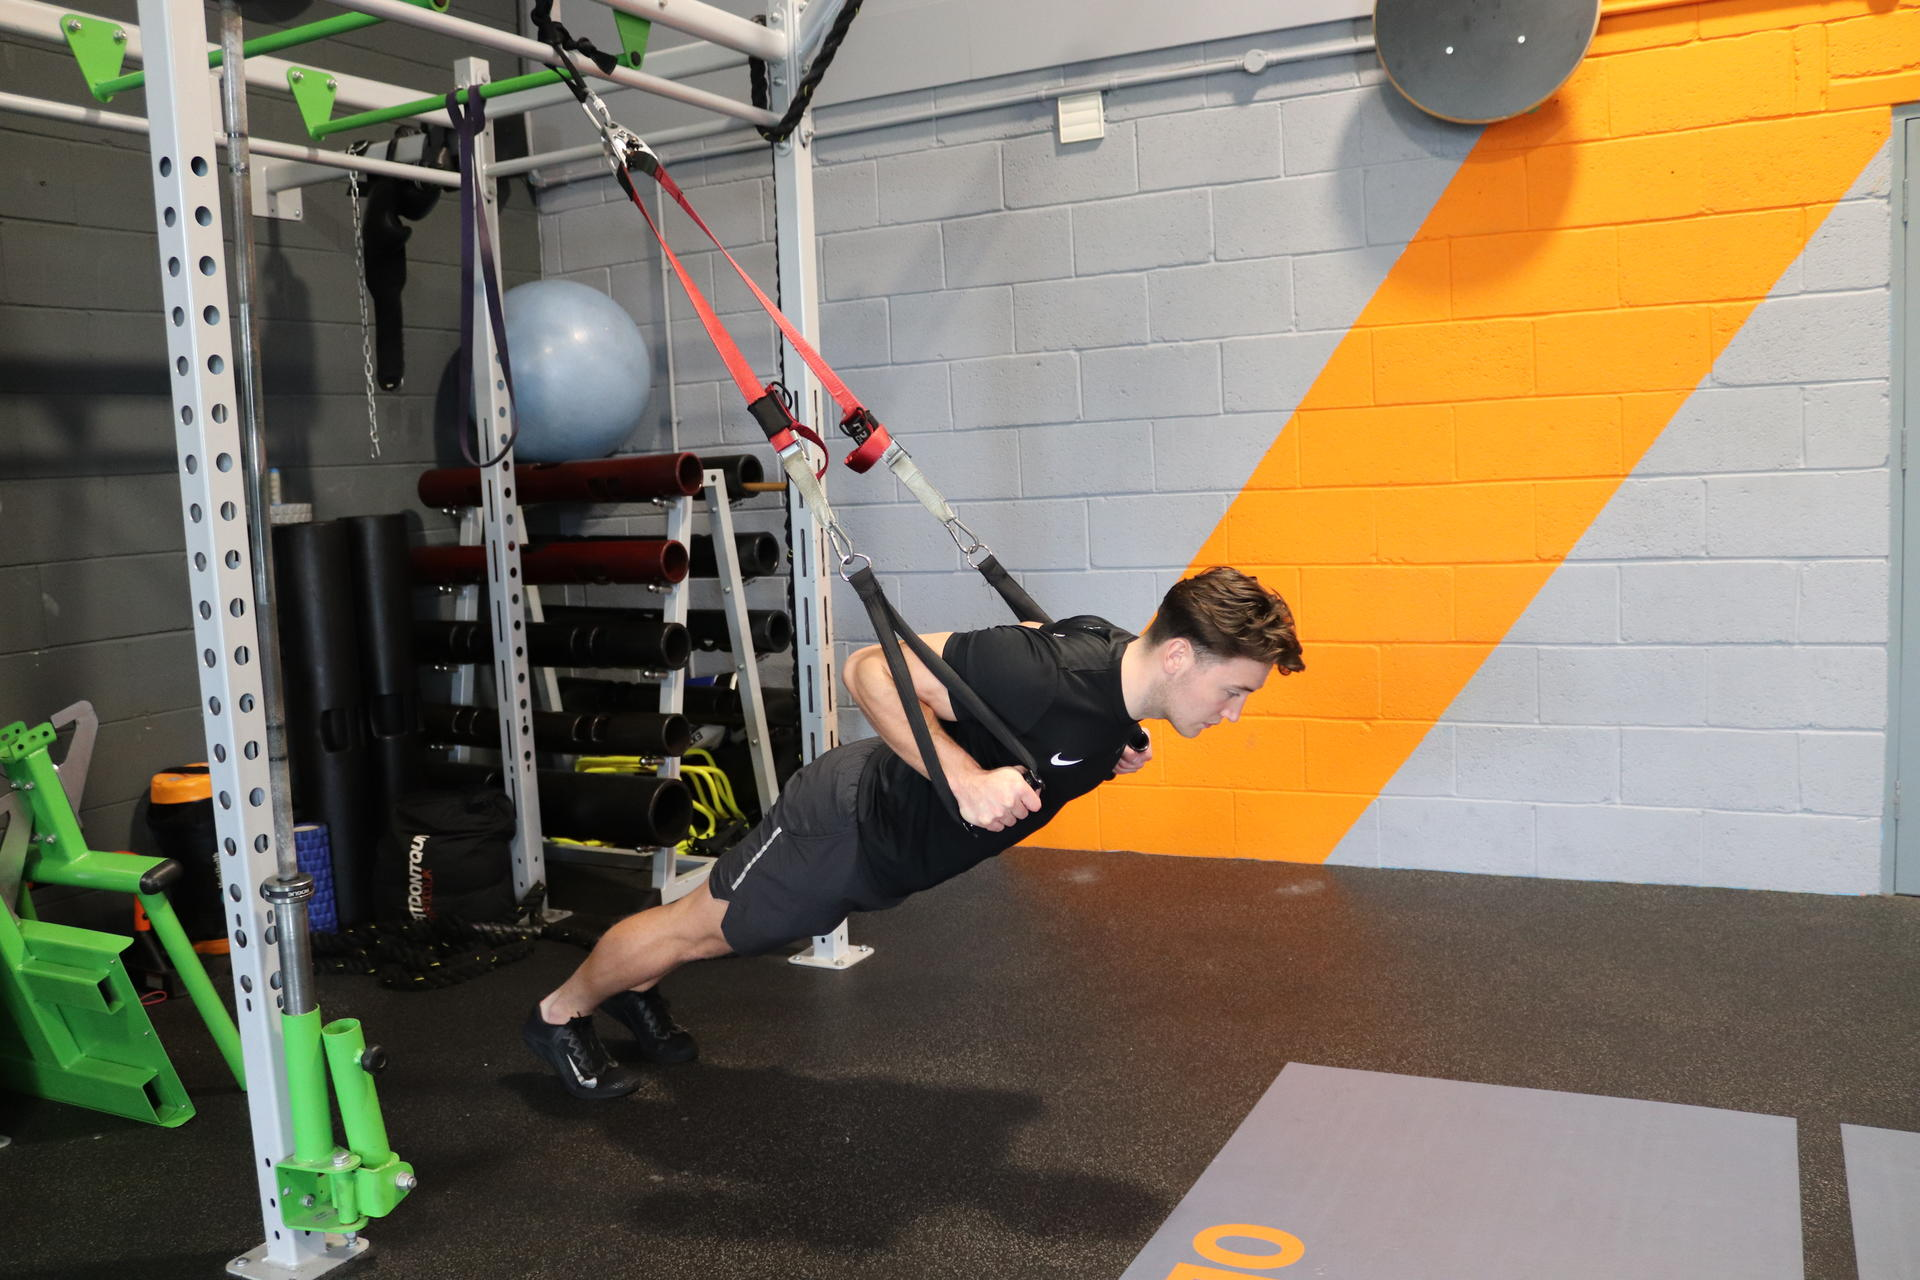 best trx exercise image